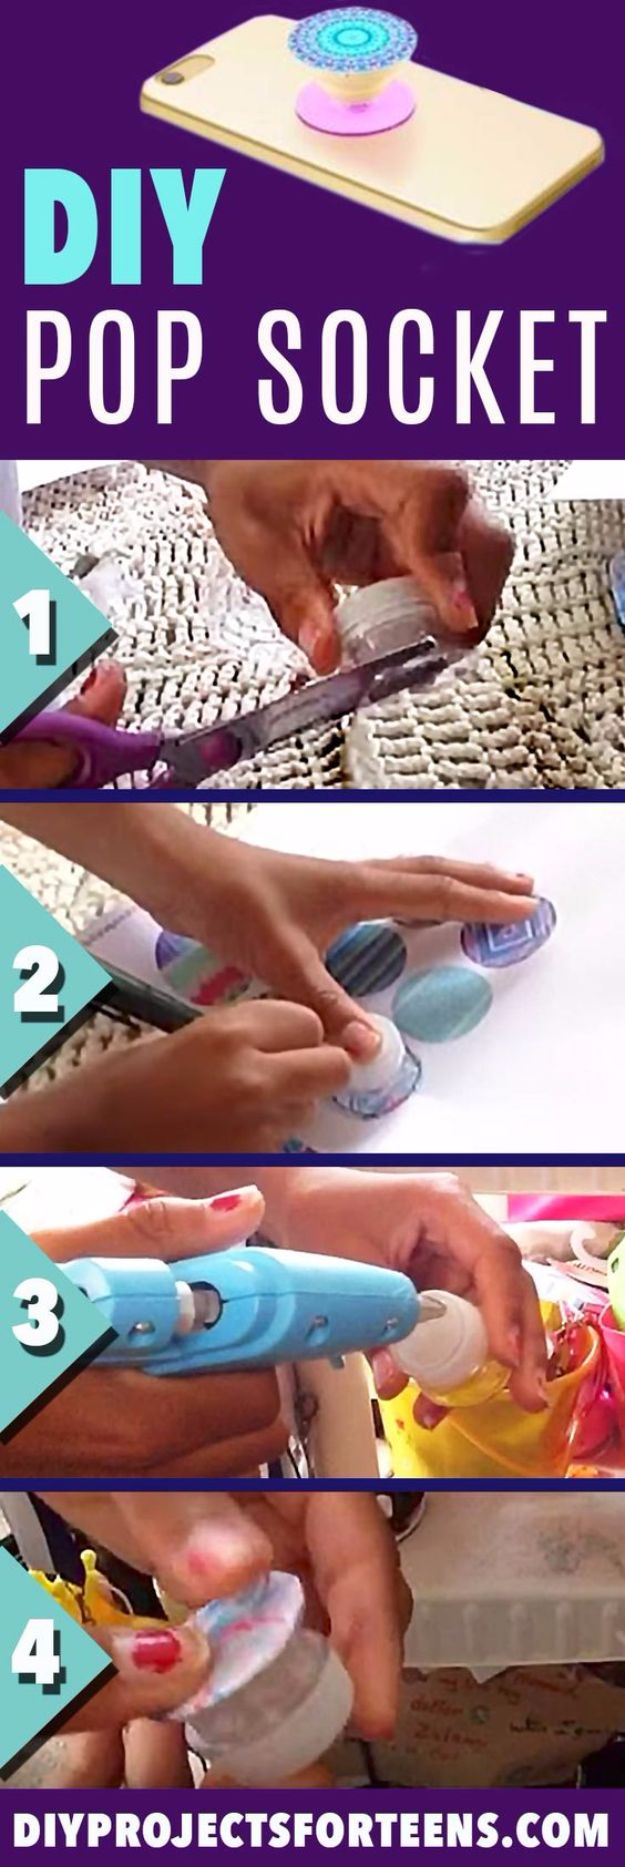 Cheap Crafts for Teens - DIY Pop Socket - Inexpensive DIY Projects for Teenagers and Tweens - Cute Room Decor, School Supplies, Accessories and Clothing You Can Make On A Budget - Fun Dollar Store Crafts - Cool DIY Gift Ideas for Christmas, Birthdays, BFF gifts and more - Step by Step Tutorials and Instructions #cheapcrafts #dollarstorecrafts #teencrafts #dollartreecrafts